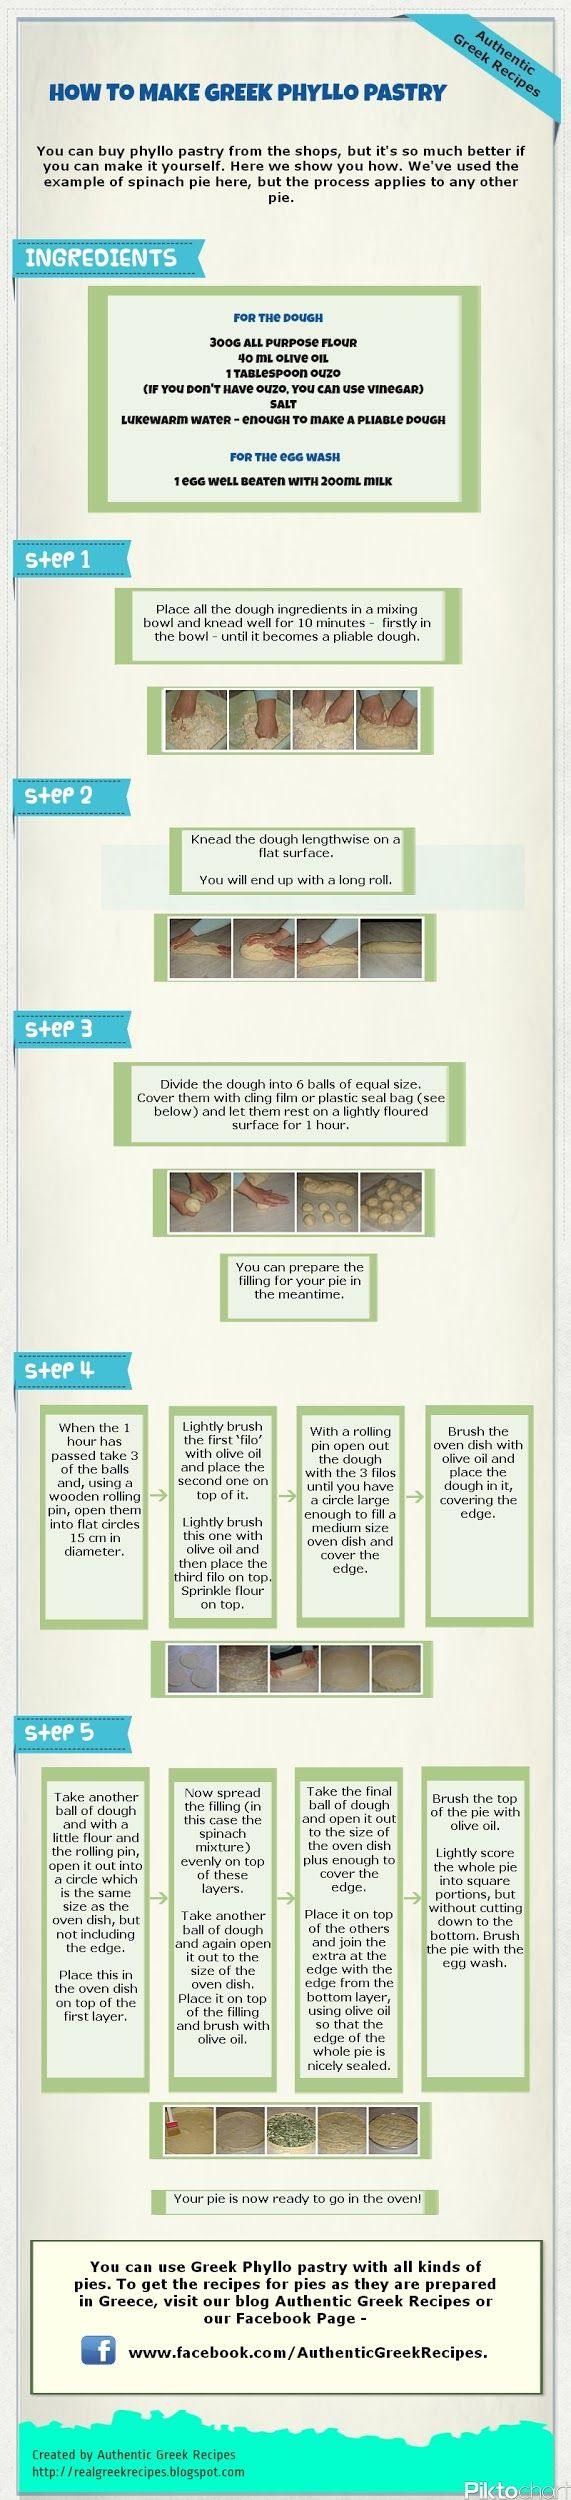 Authentic Greek Recipes: Infographic - How To Make Greek Phyllo Pastry